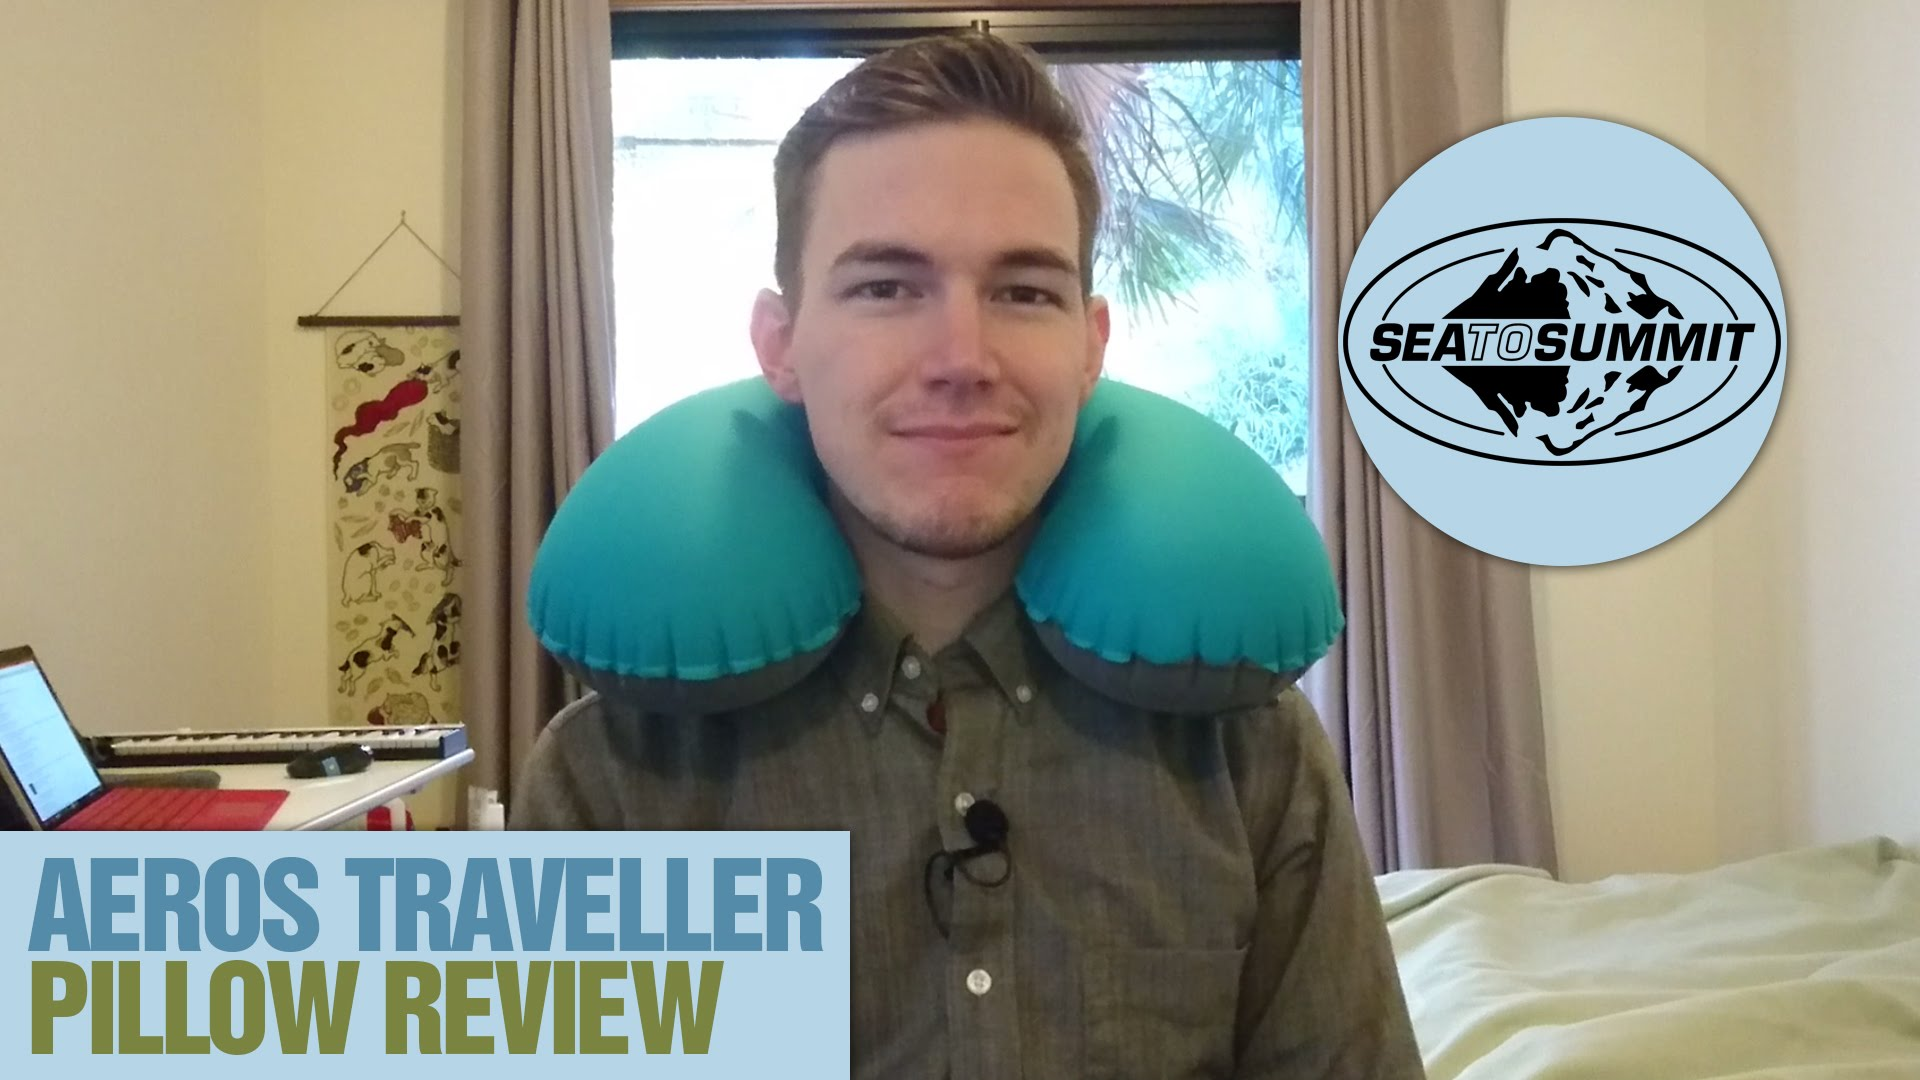 Sea-To-Summit-Aeros-Traveller-Pillow-Review